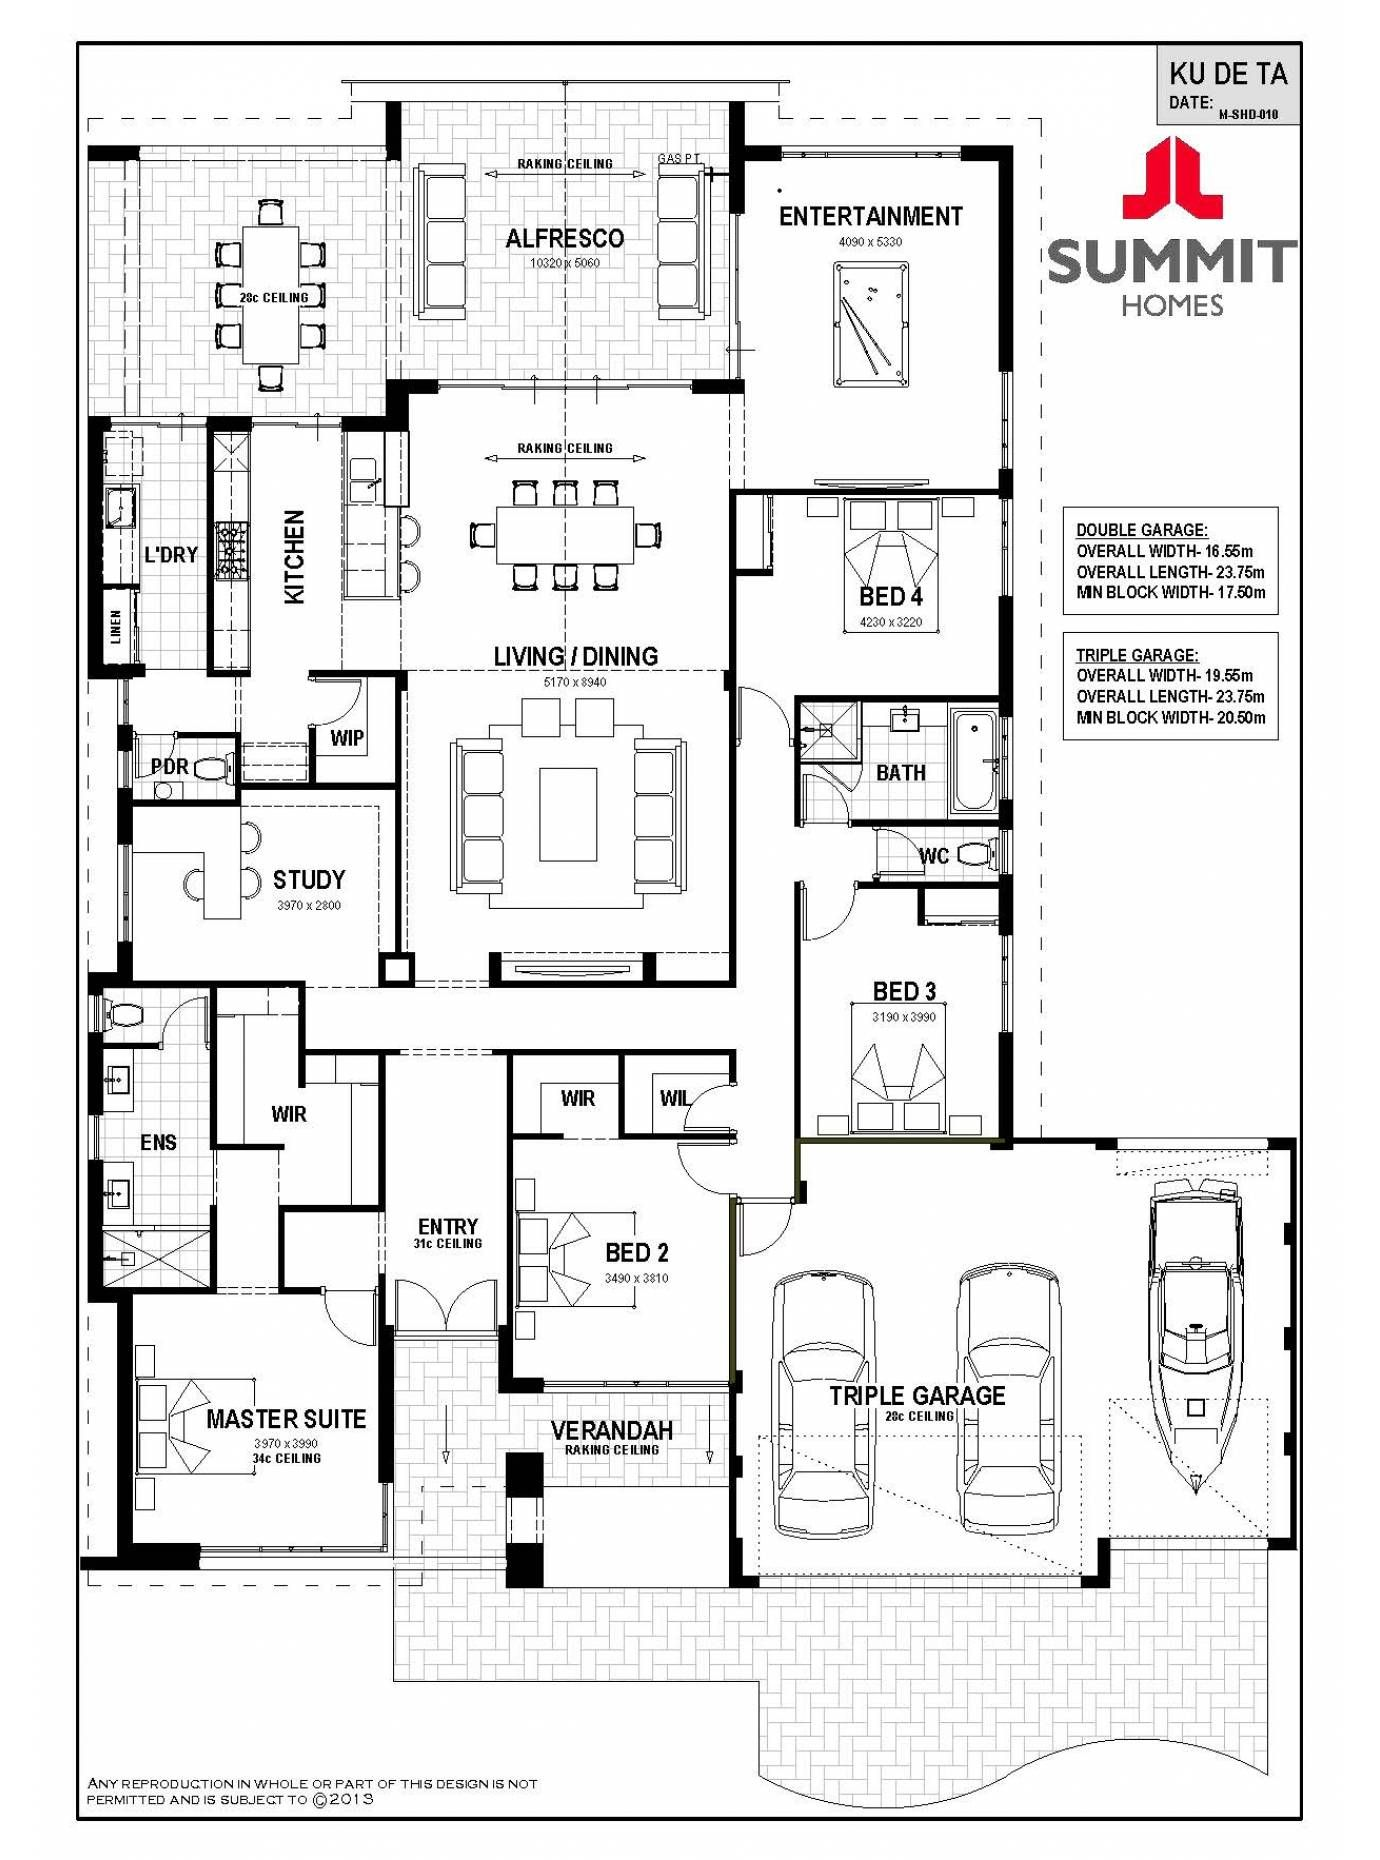 The Ku De Ta By Summit Homes Home Design Floor Plans Summit Homes Dream House Plans